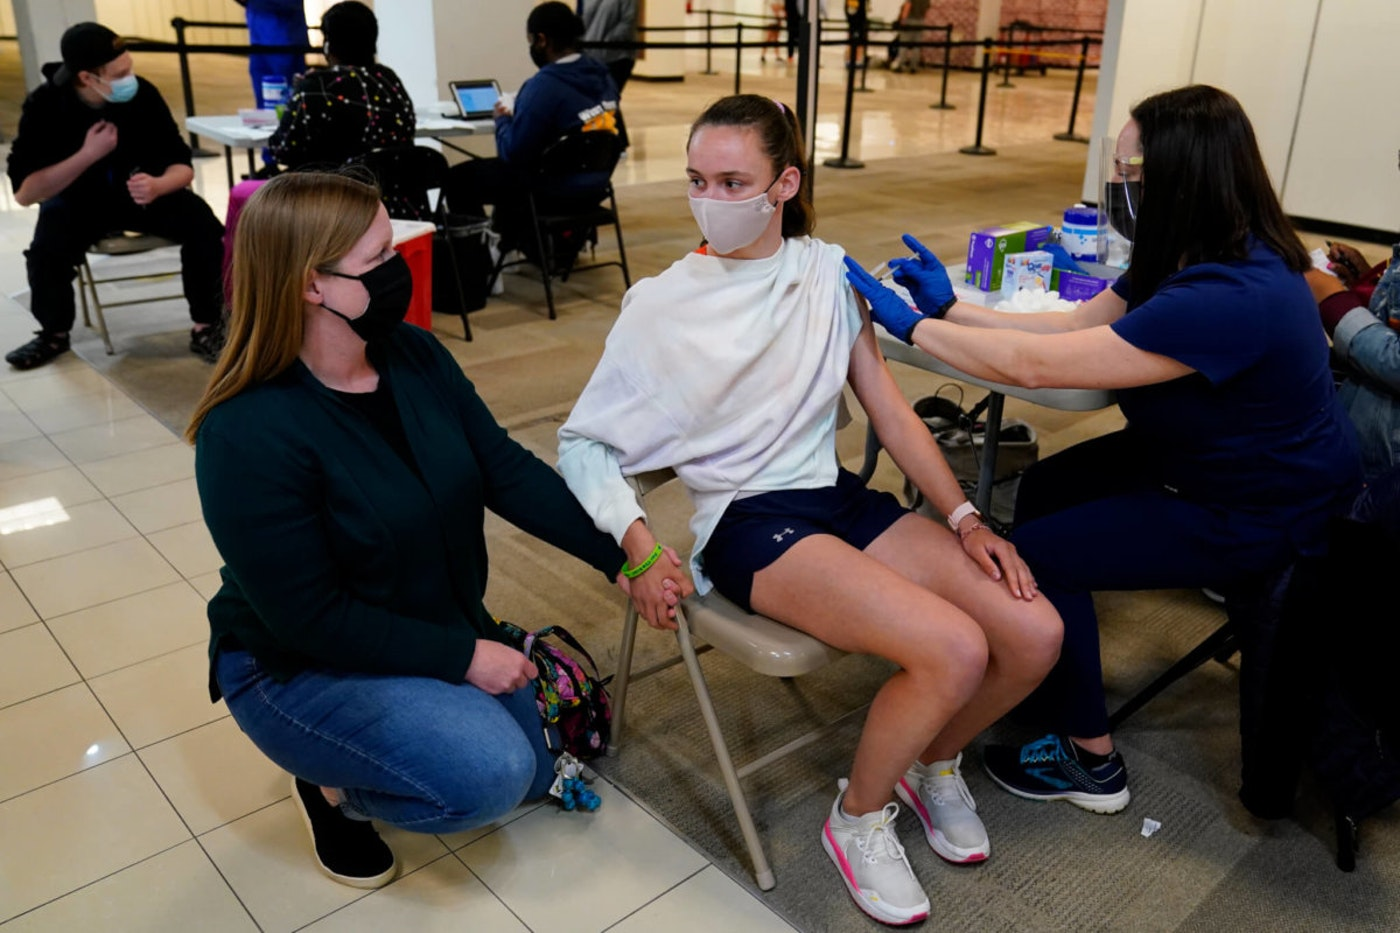 Meg Edwards, left, of Flourtown, Pa., comforts her daughter, Kate Edwards, 15, as she receives a Pfizer COVID-19 vaccination from registered nurse Philene Moore at a Montgomery County, Pa. Office of Public Health vaccination clinic at the King of Prussia Mall, Tuesday, May 11, 2021, in King of Prussia, Pa. (AP Photo/Matt Slocum)